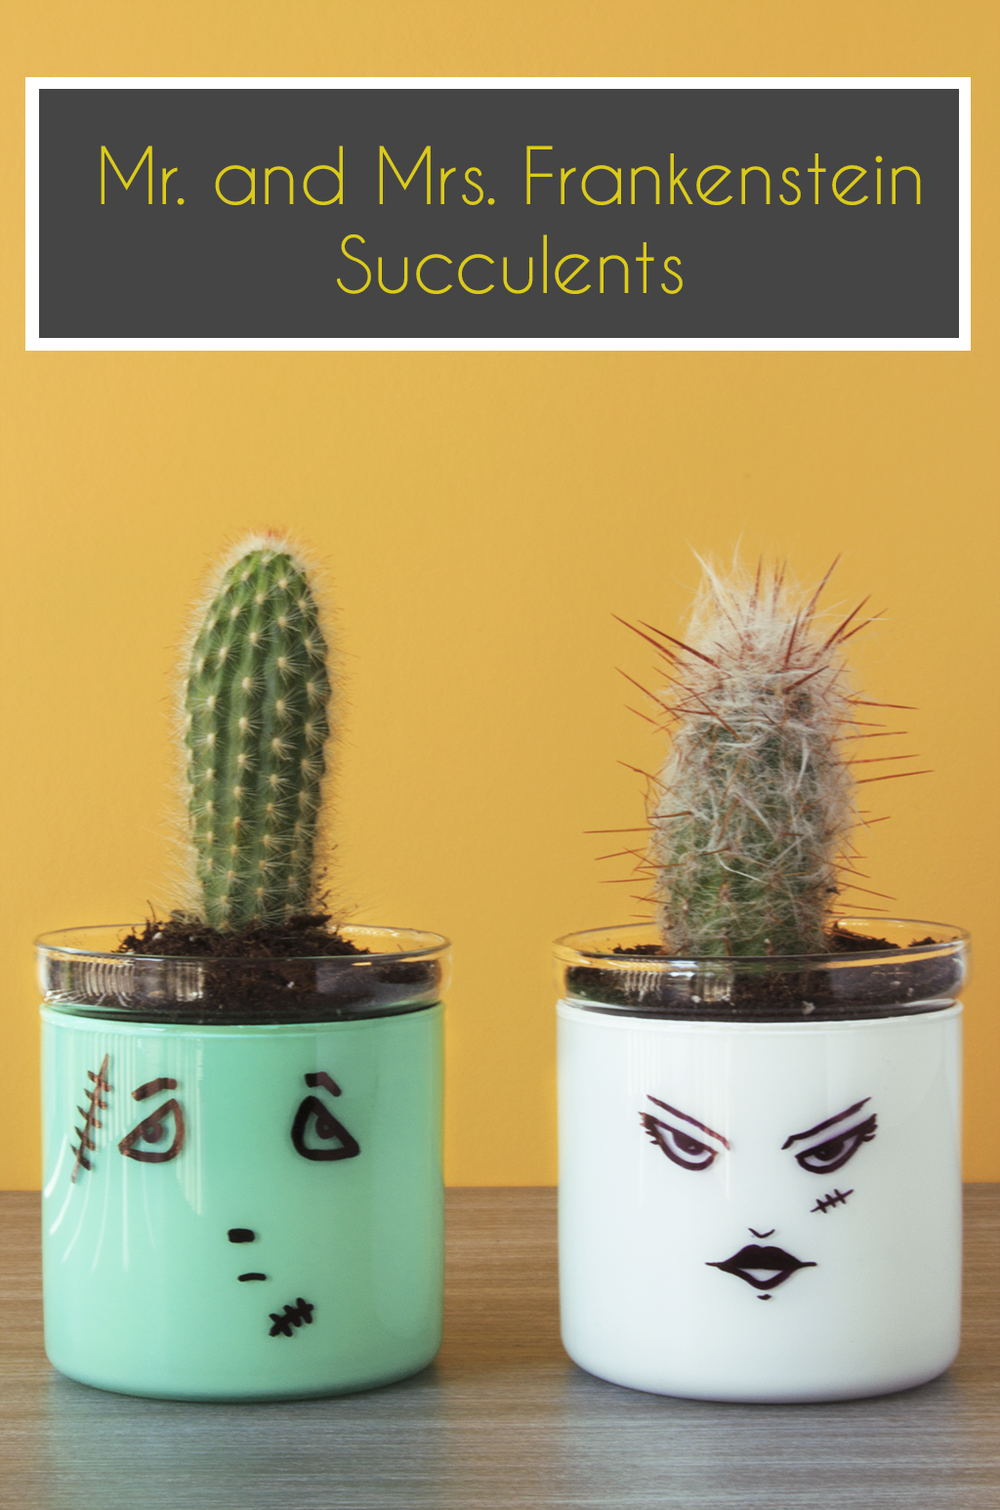 Mr. and Mrs. Frankenstein Succulent Plant Holders